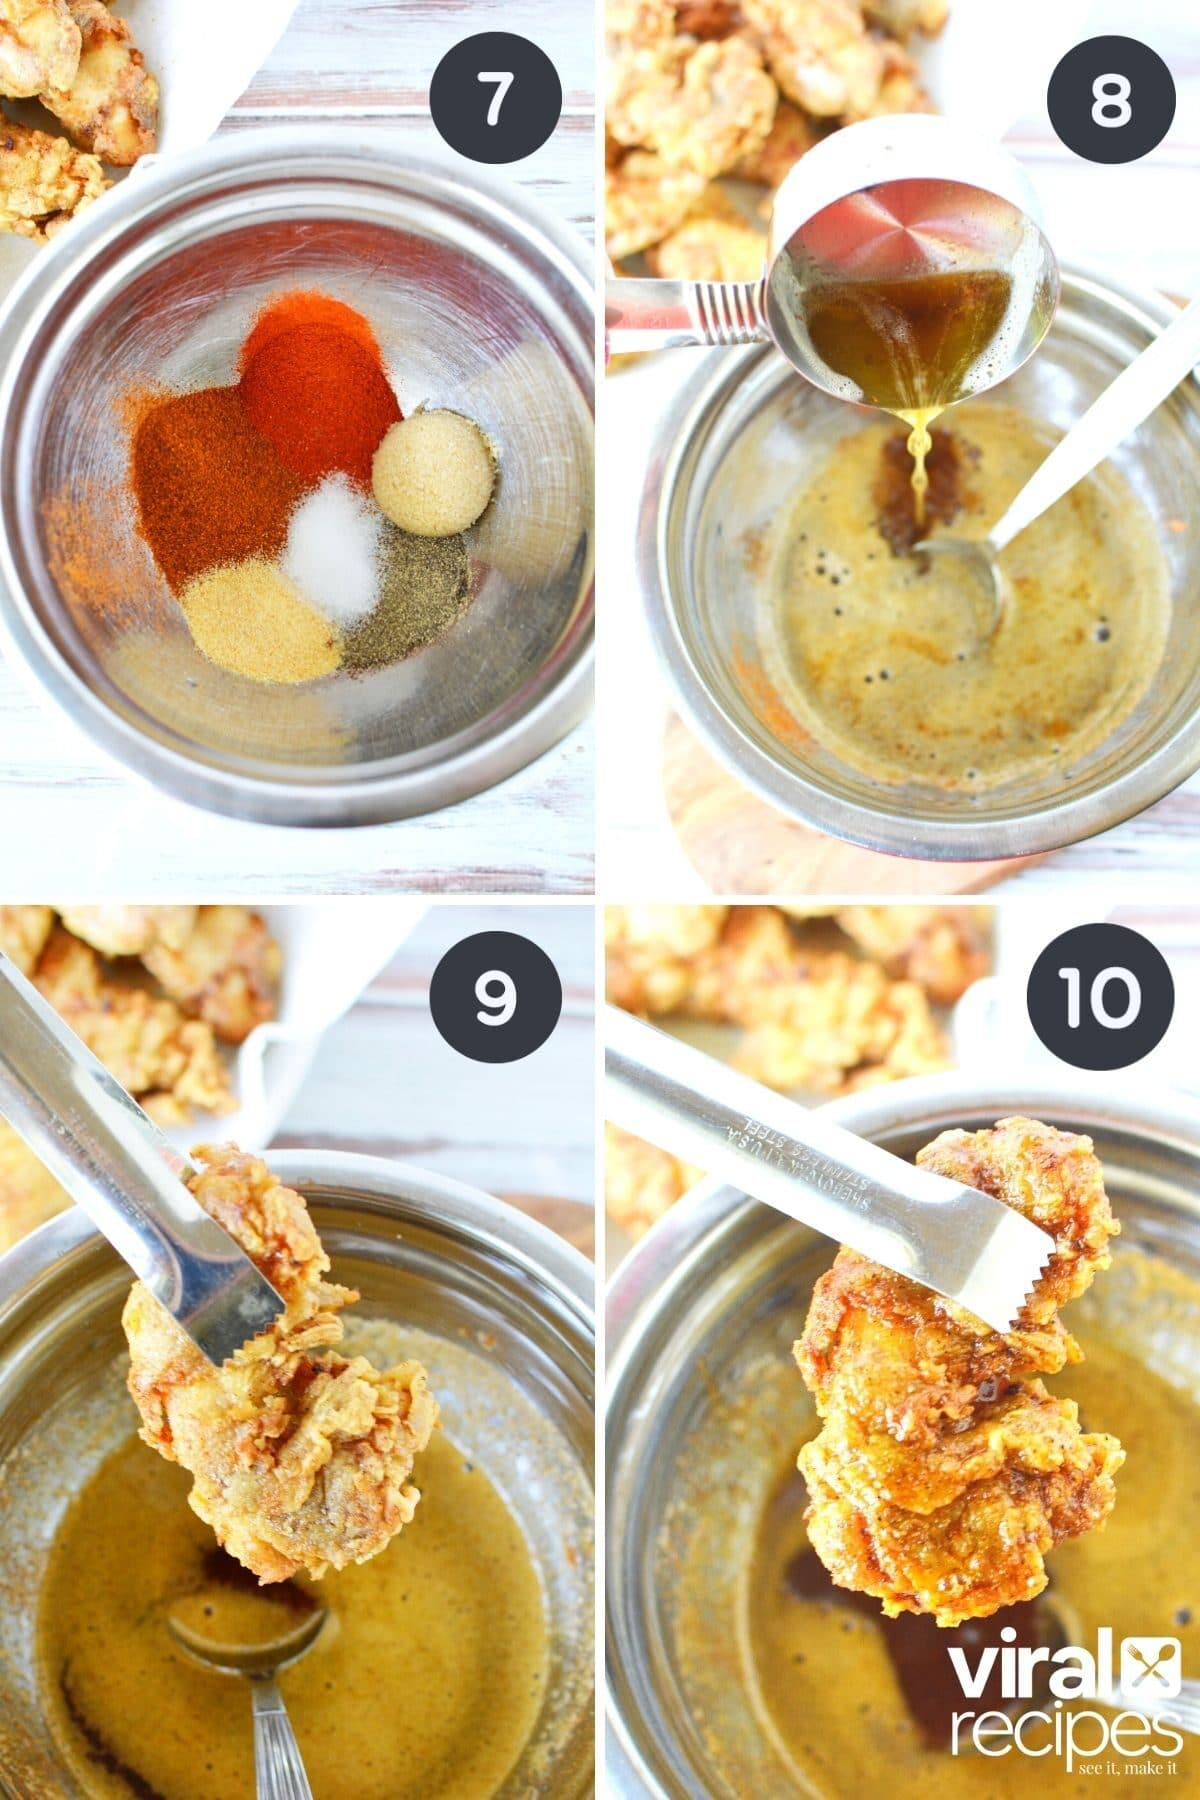 4 collage images of KFC copycat chicken being dipped into Nashville hot sauce.